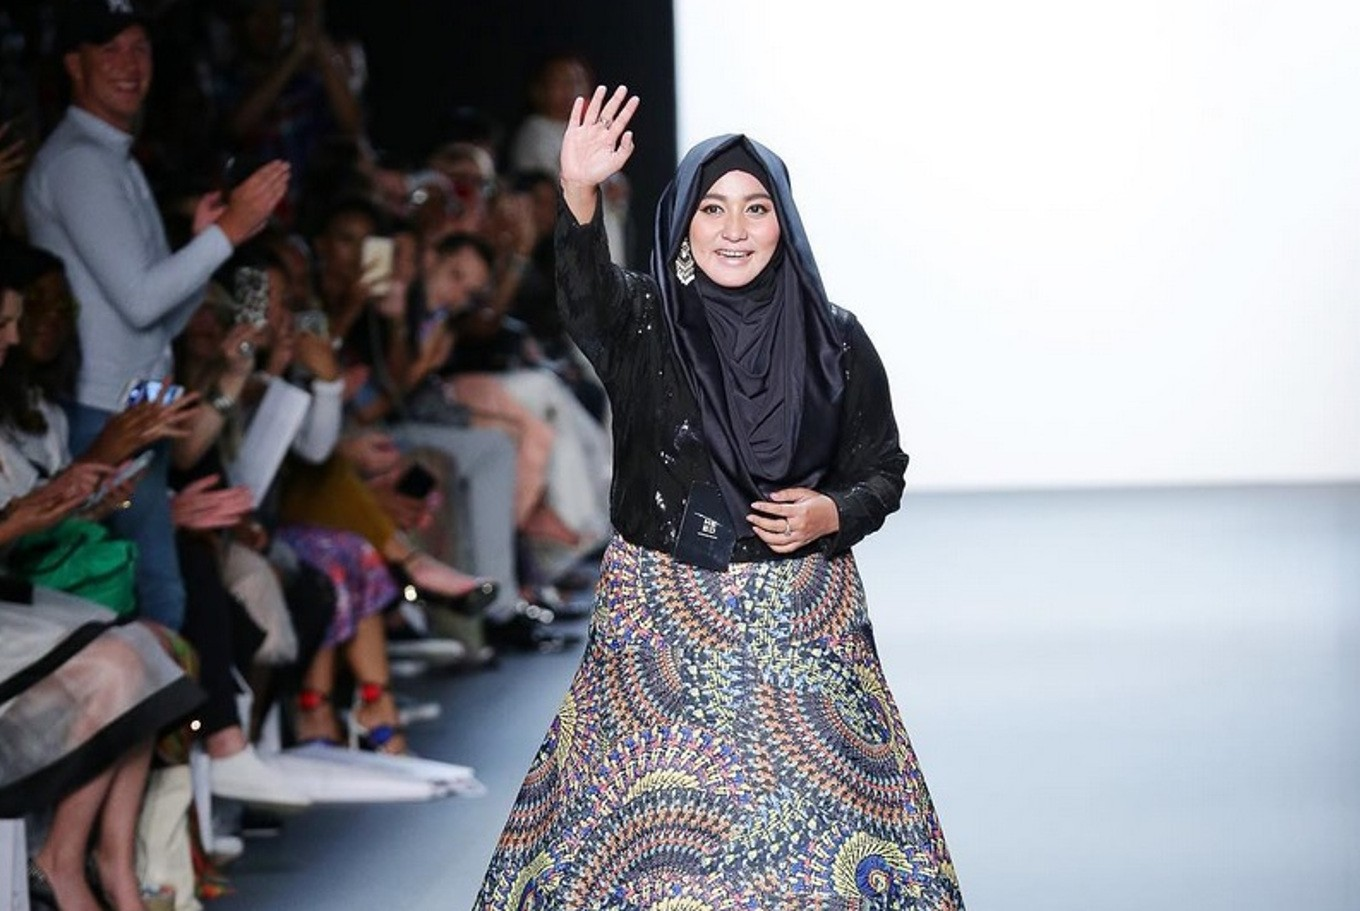 Indonesian Designer 39 S Hijab Collection Wows New York Fashion Week Crowd Lifestyle The